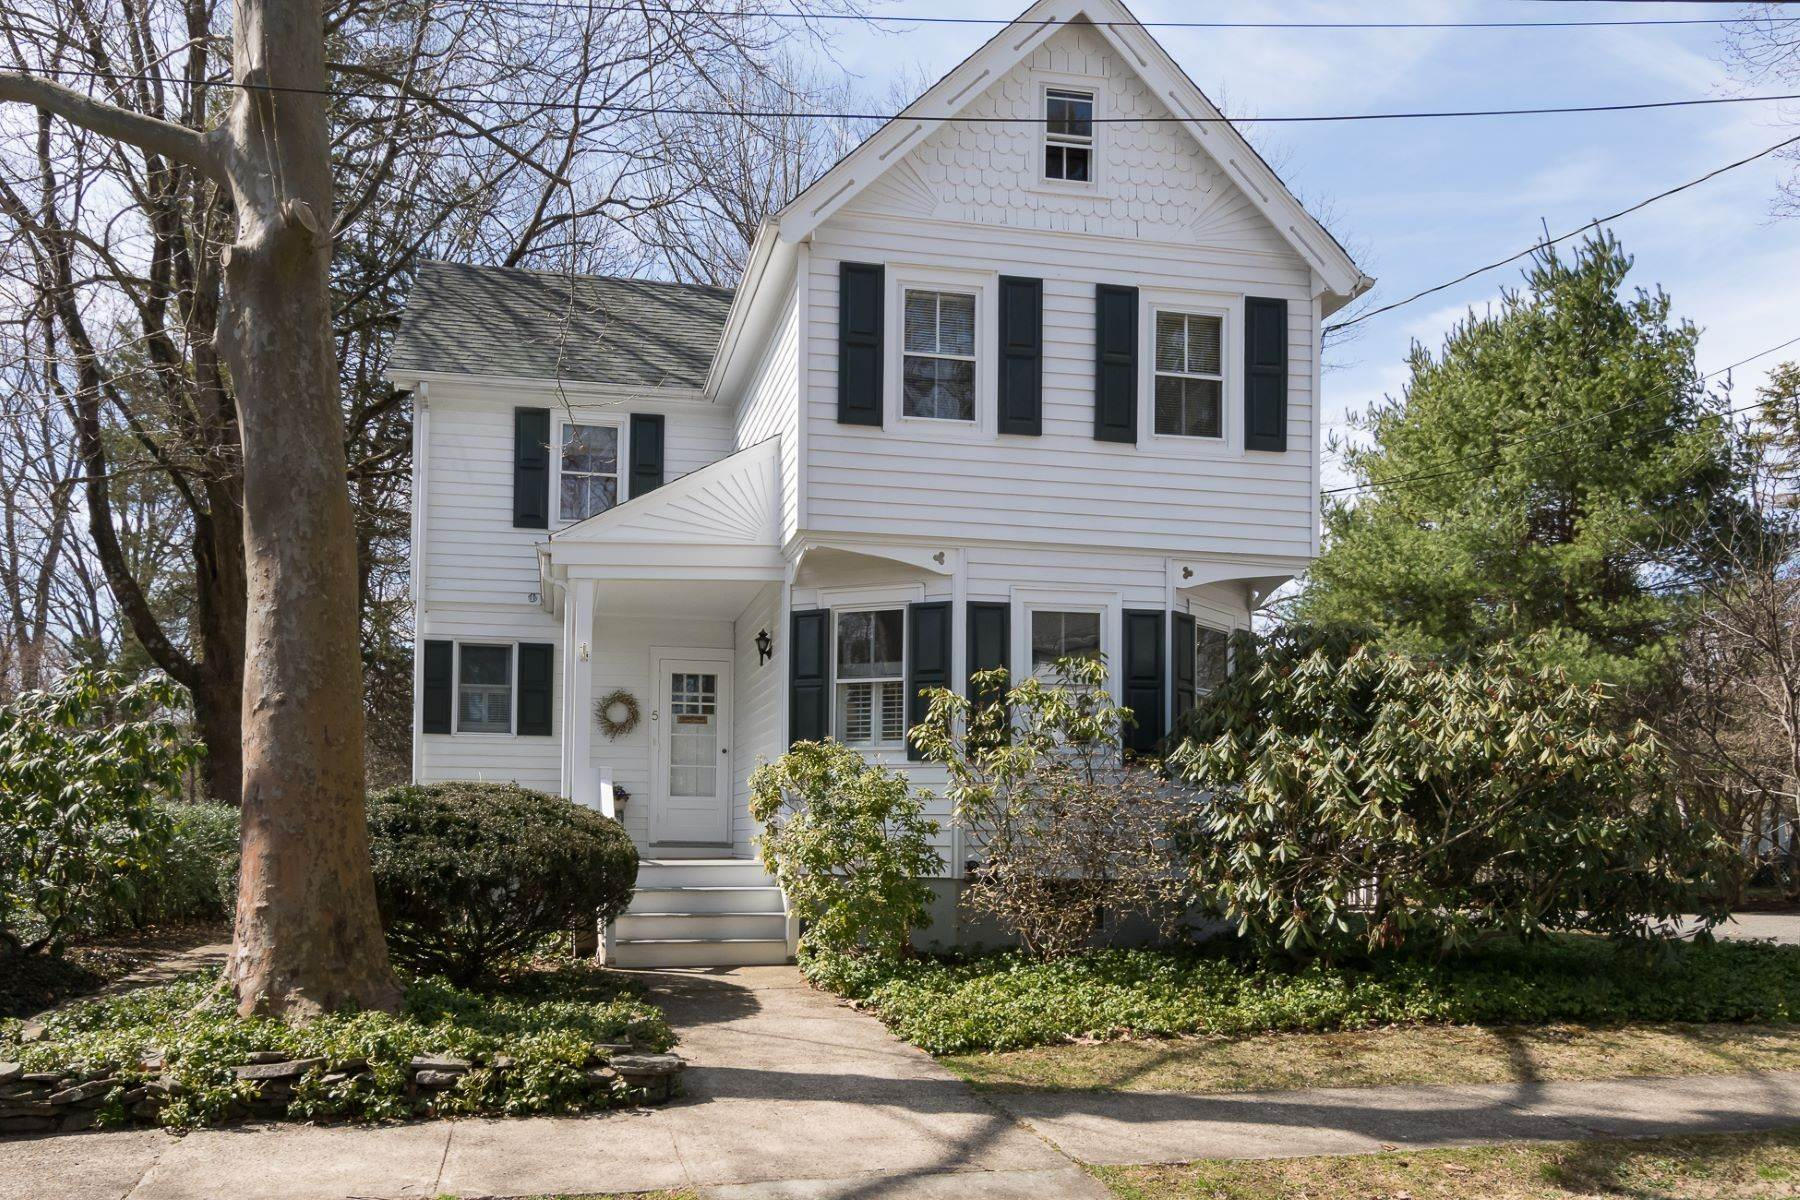 Single Family Homes for Sale at Storybook Home on a Stroll-Everywhere Street 5 Titus Avenue, Lawrenceville, New Jersey 08648 United States